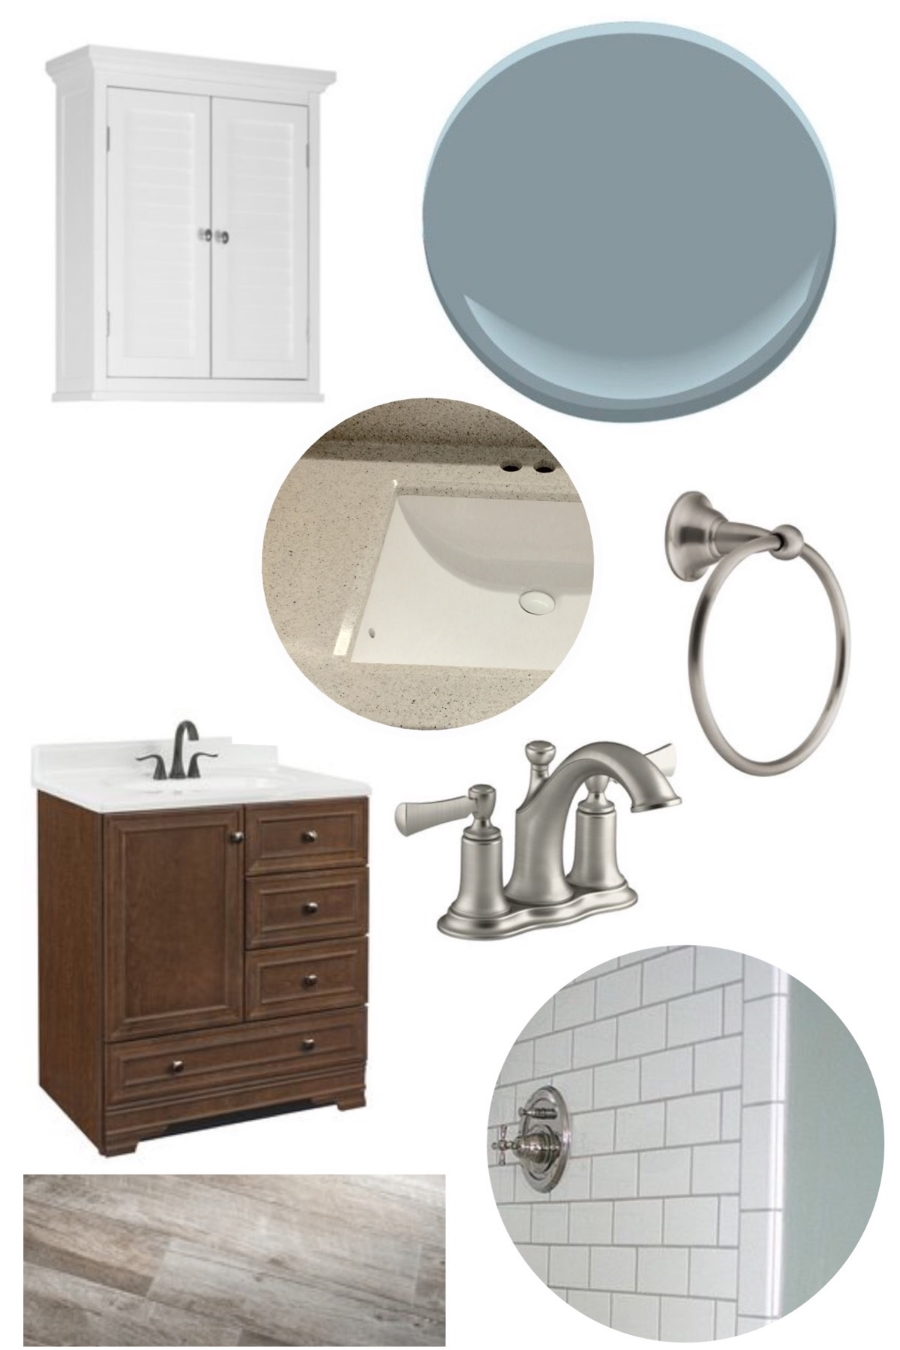 Complete Bathroom In Stock from Lowes